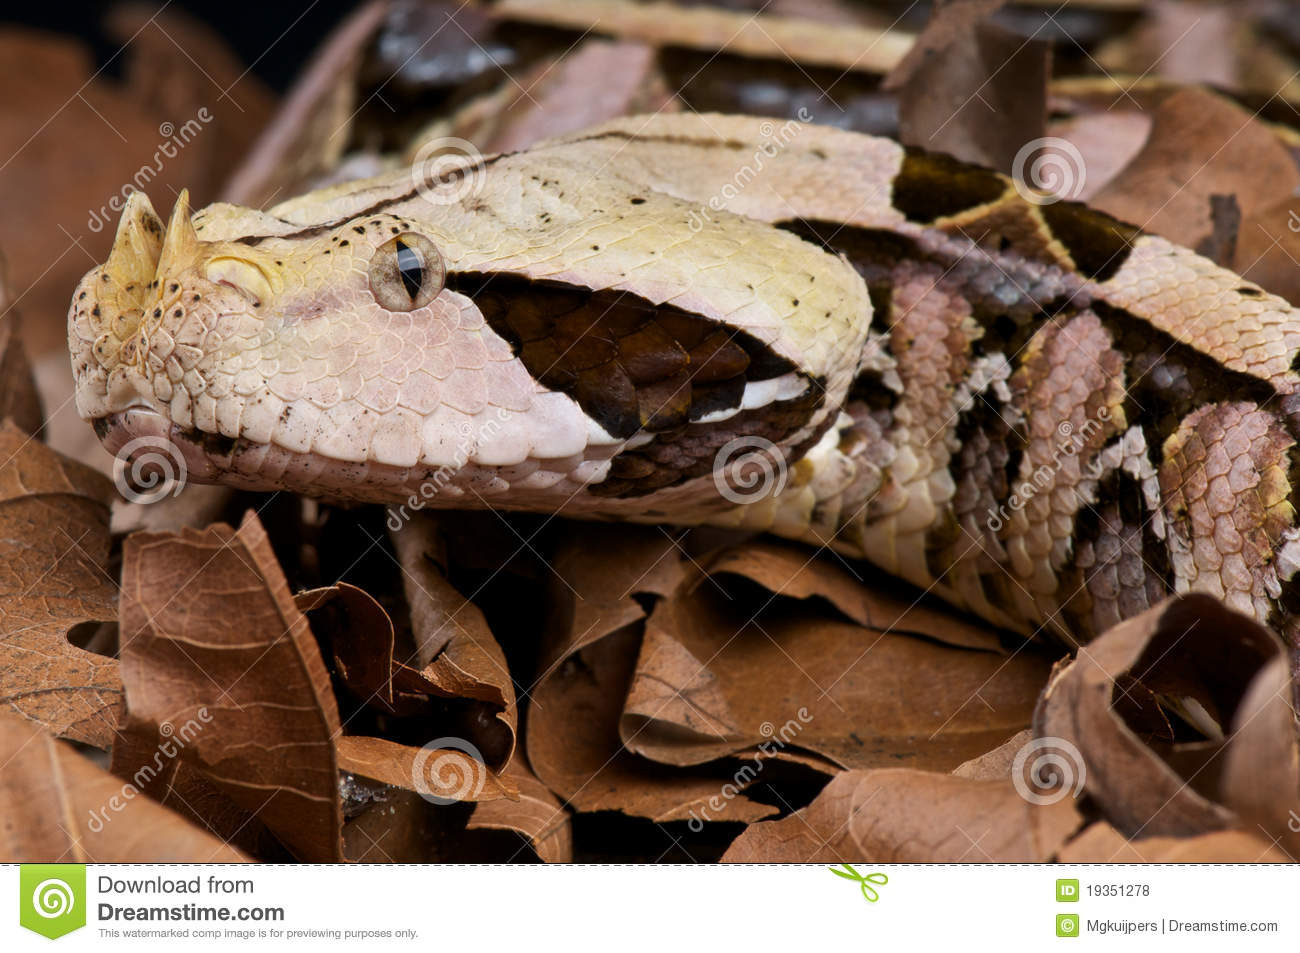 Gaboon Viper clipart #20, Download drawings